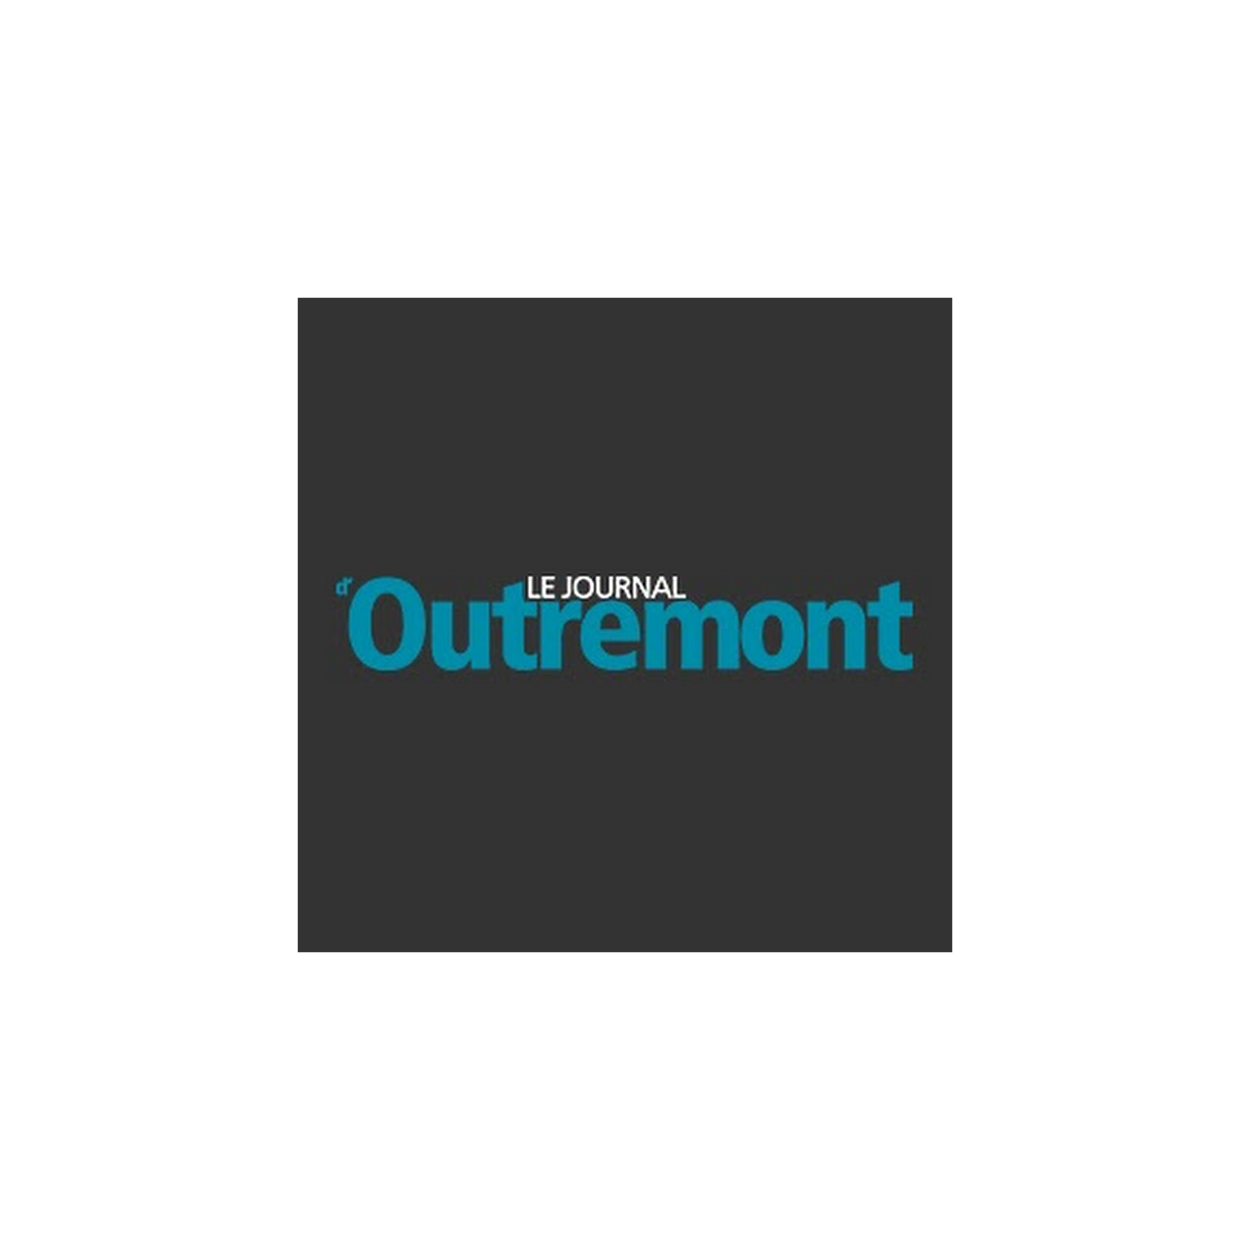 Le Journal Outremont